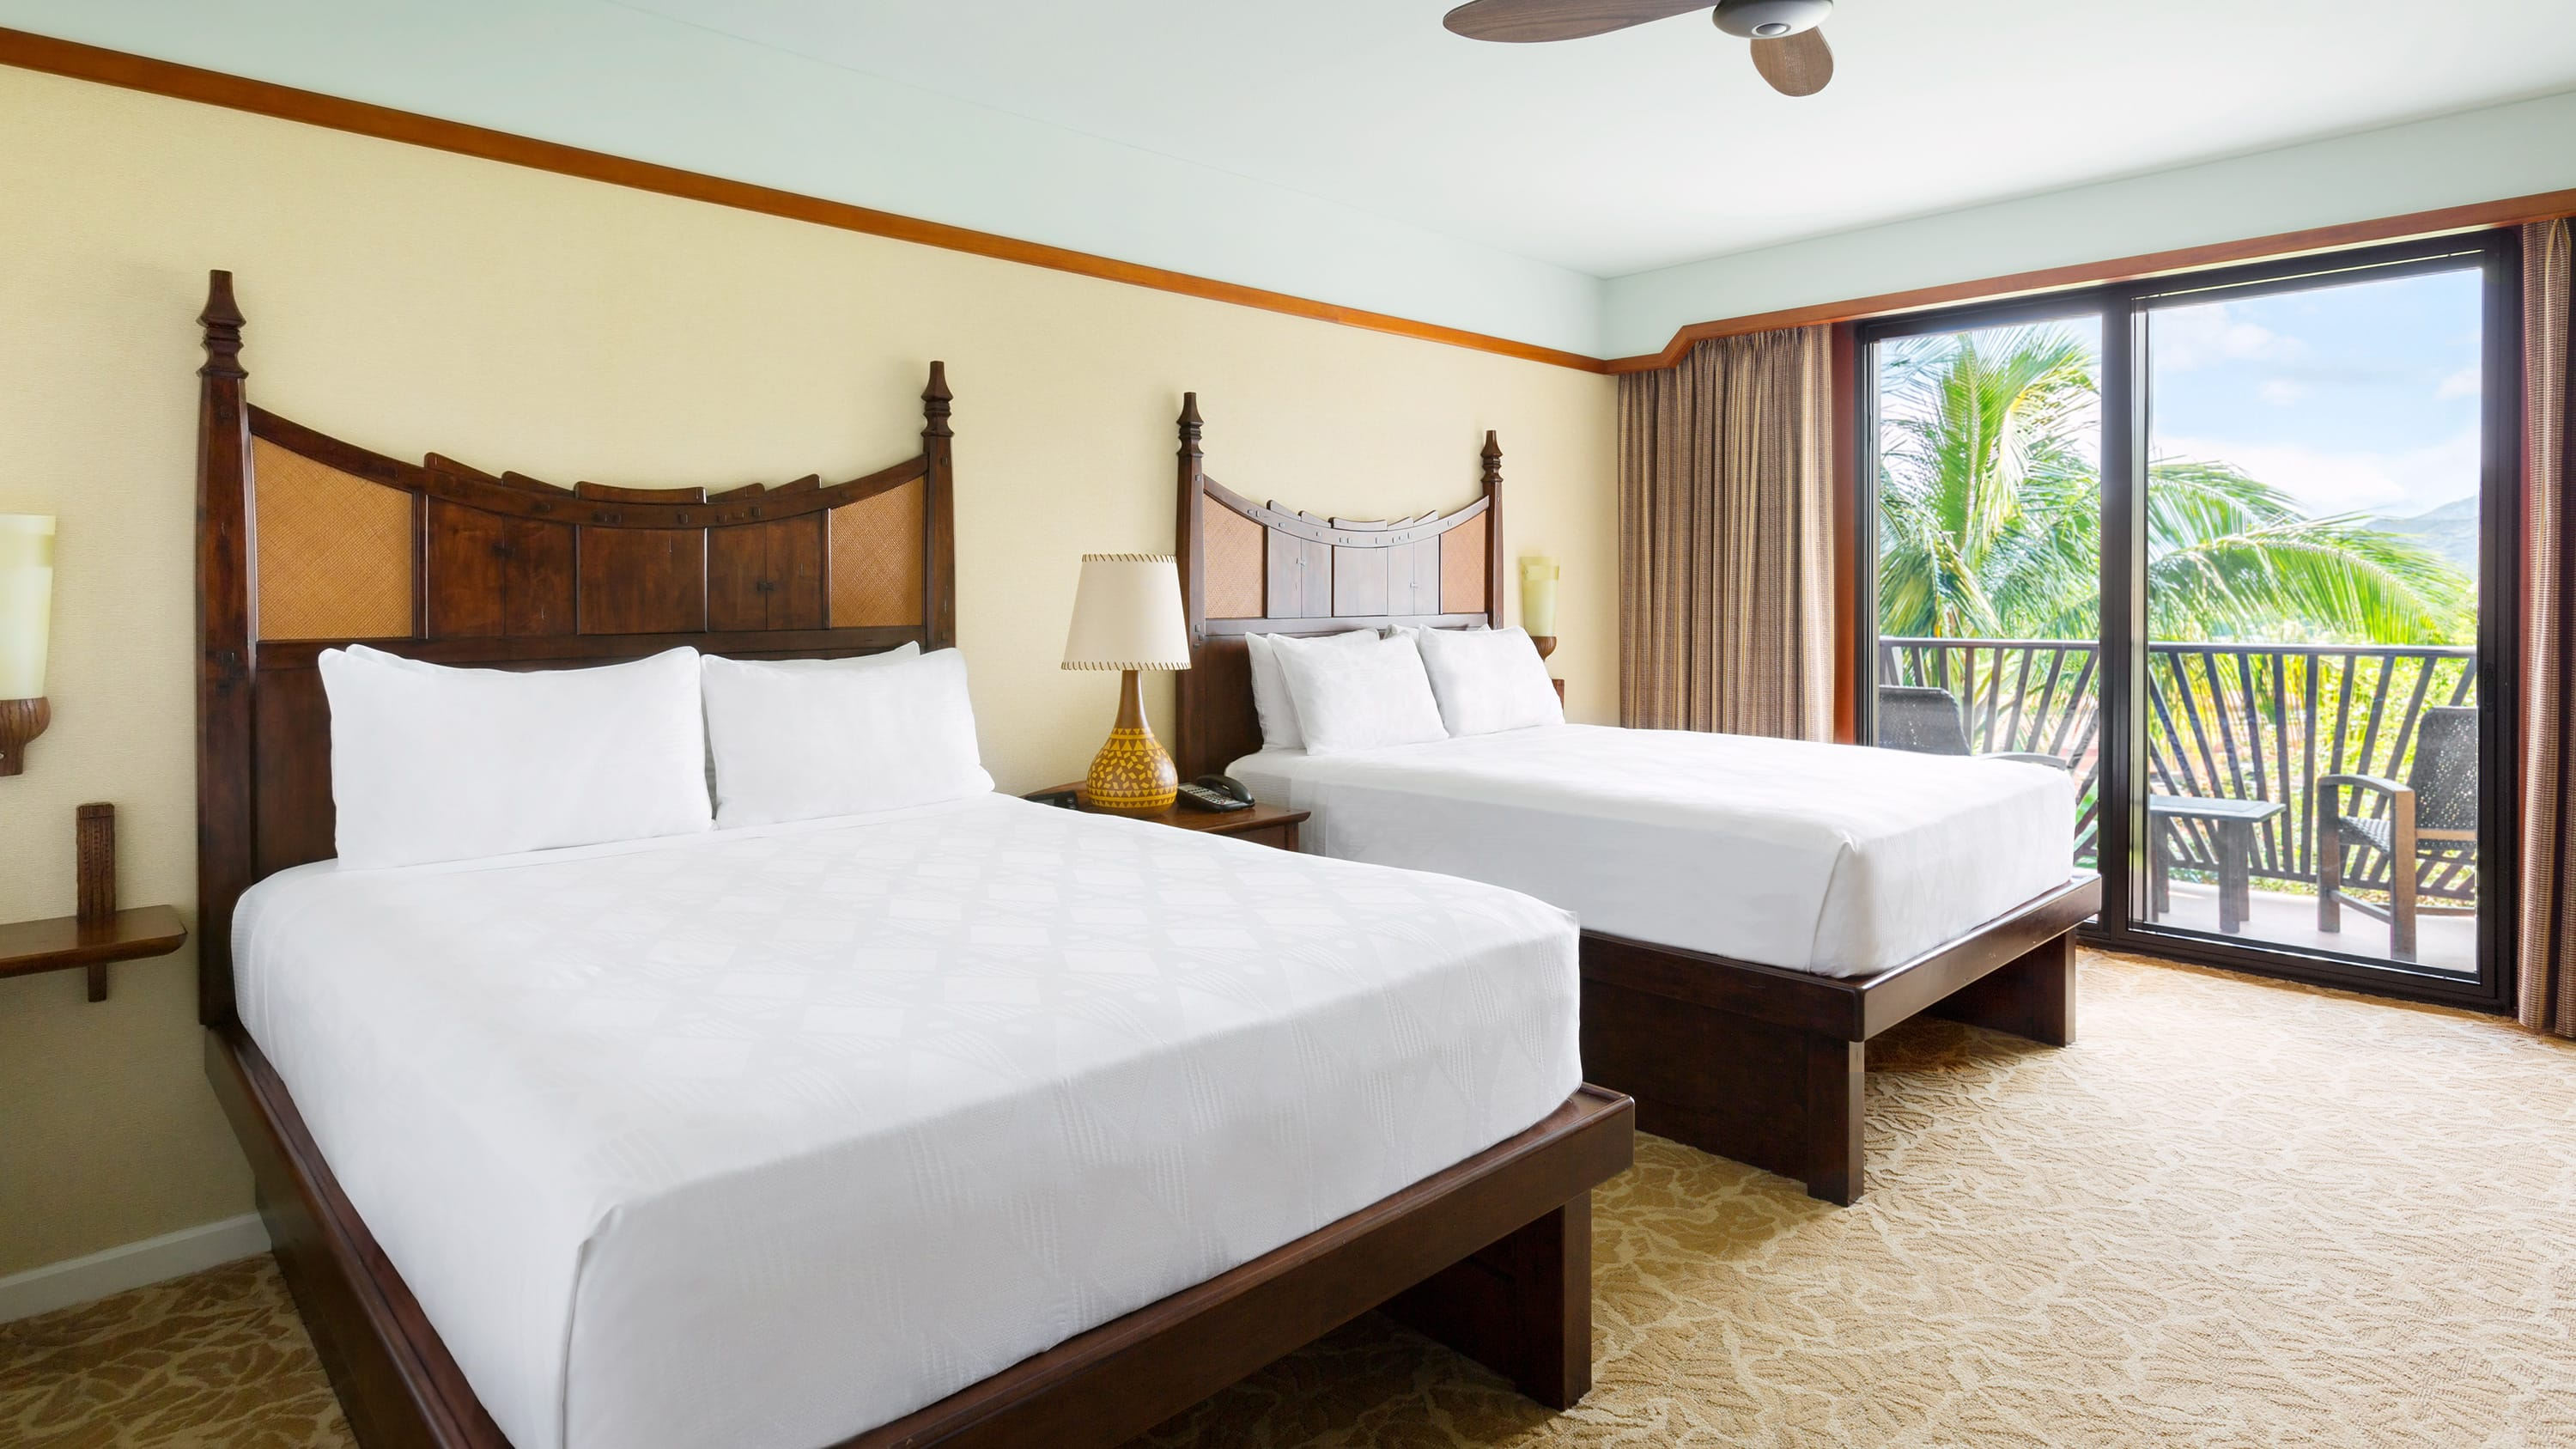 A standard room at Aulani Resort with 2 queen beds